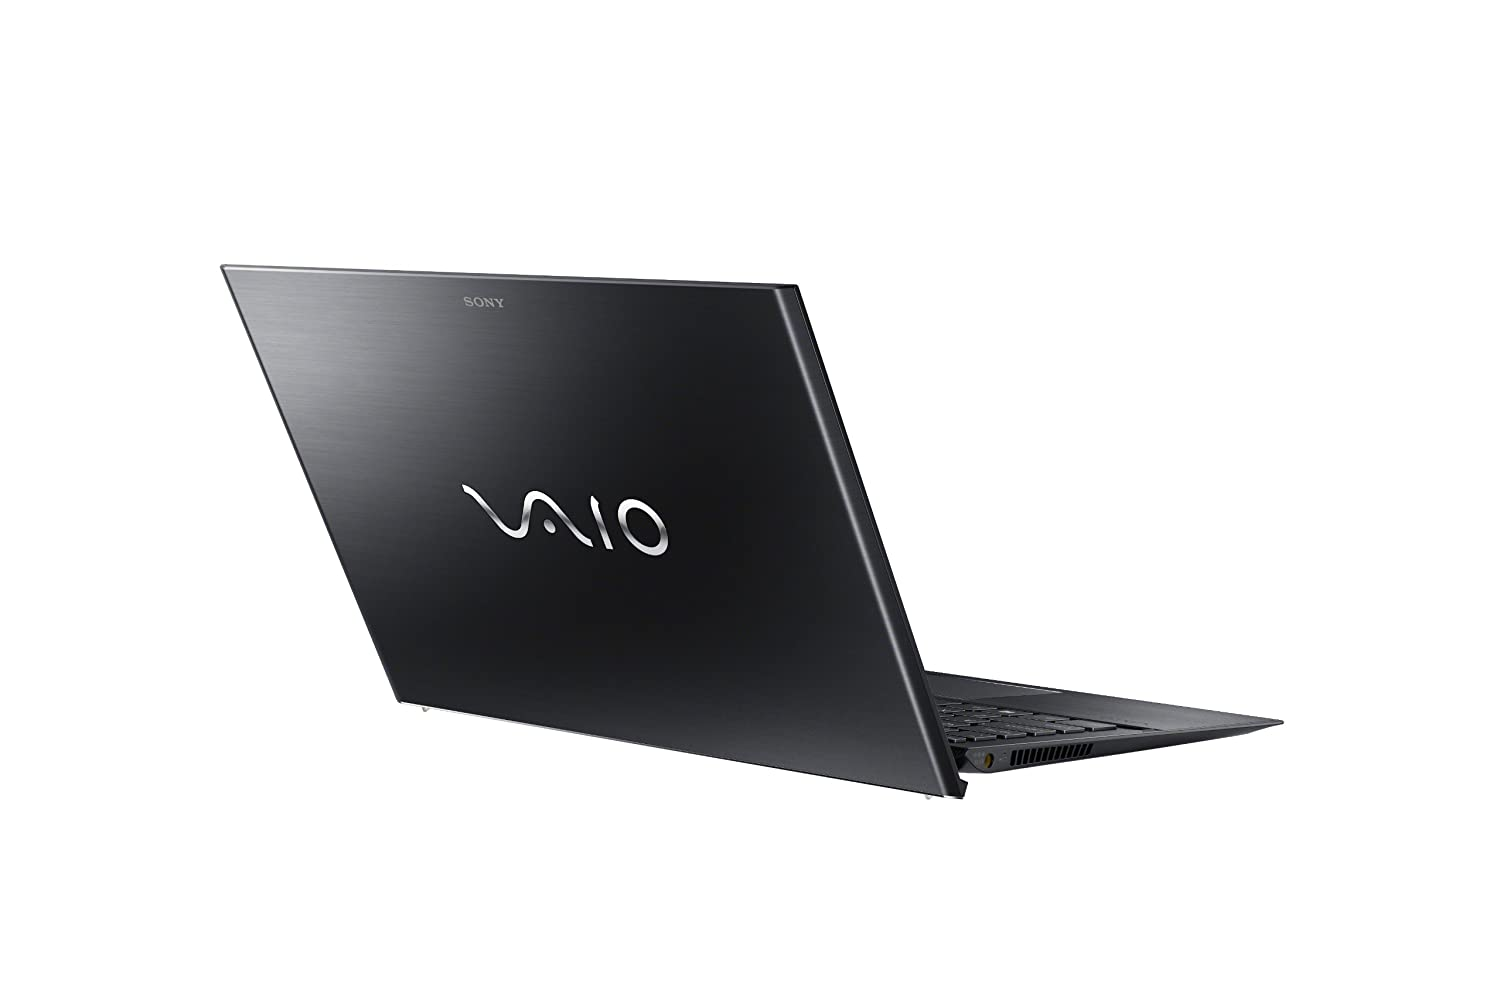 Sony vaio t13 ultrabook review the register - Amazon Com Sony Vaio Pro Svp13213cxb 13 3 Inch Core I5 Touchscreen Ultrabook Carbon Black Computers Accessories